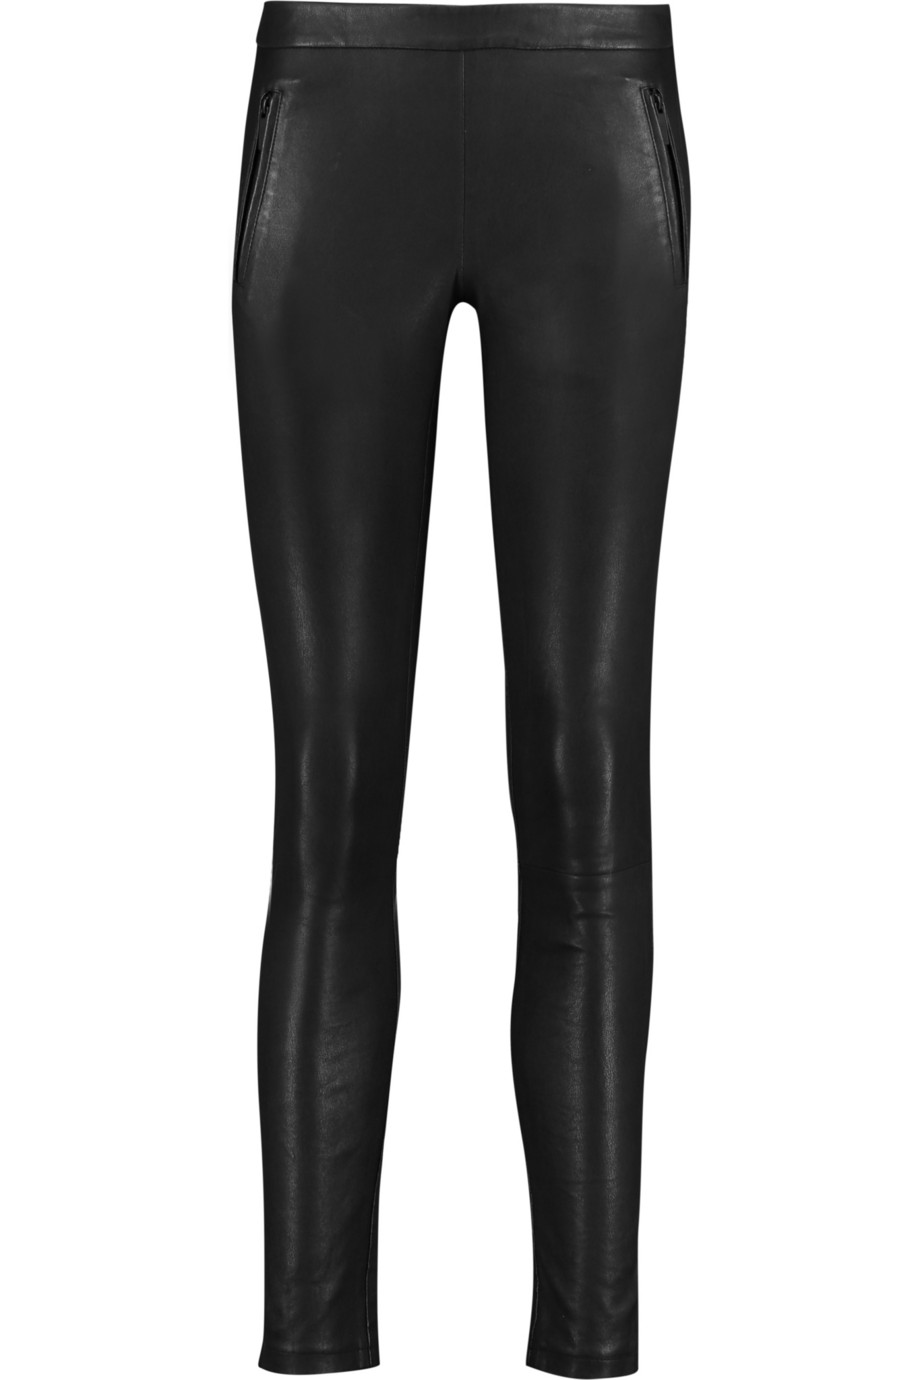 Karl Lagerfeld Leather Skinnys $330